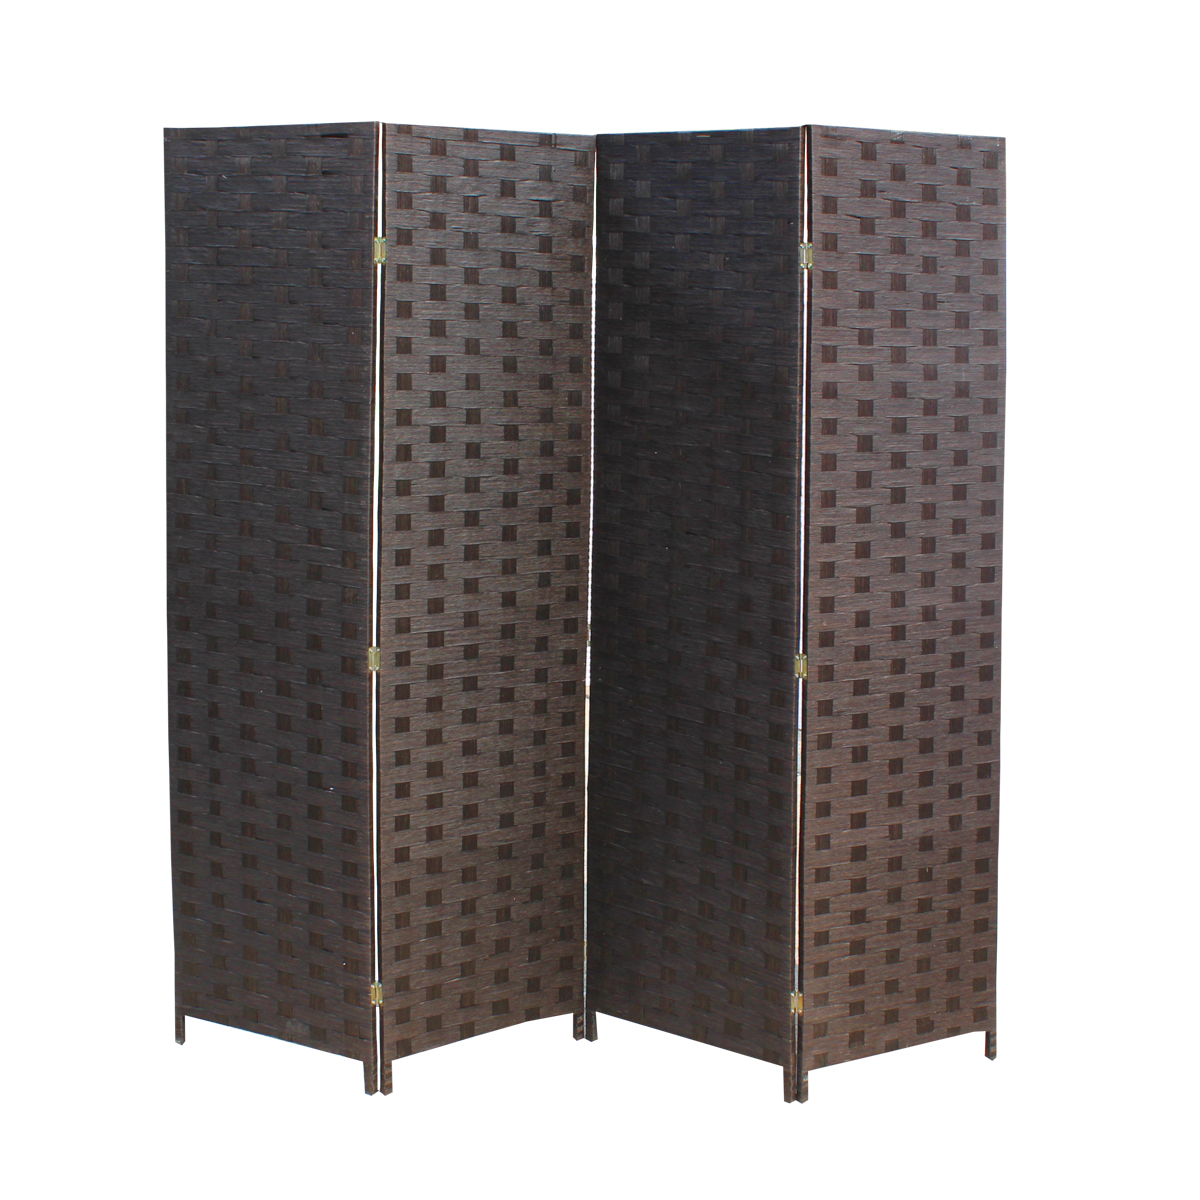 Wood Mesh Woven Design 4 Panel Folding Wooden Screen Room Divider